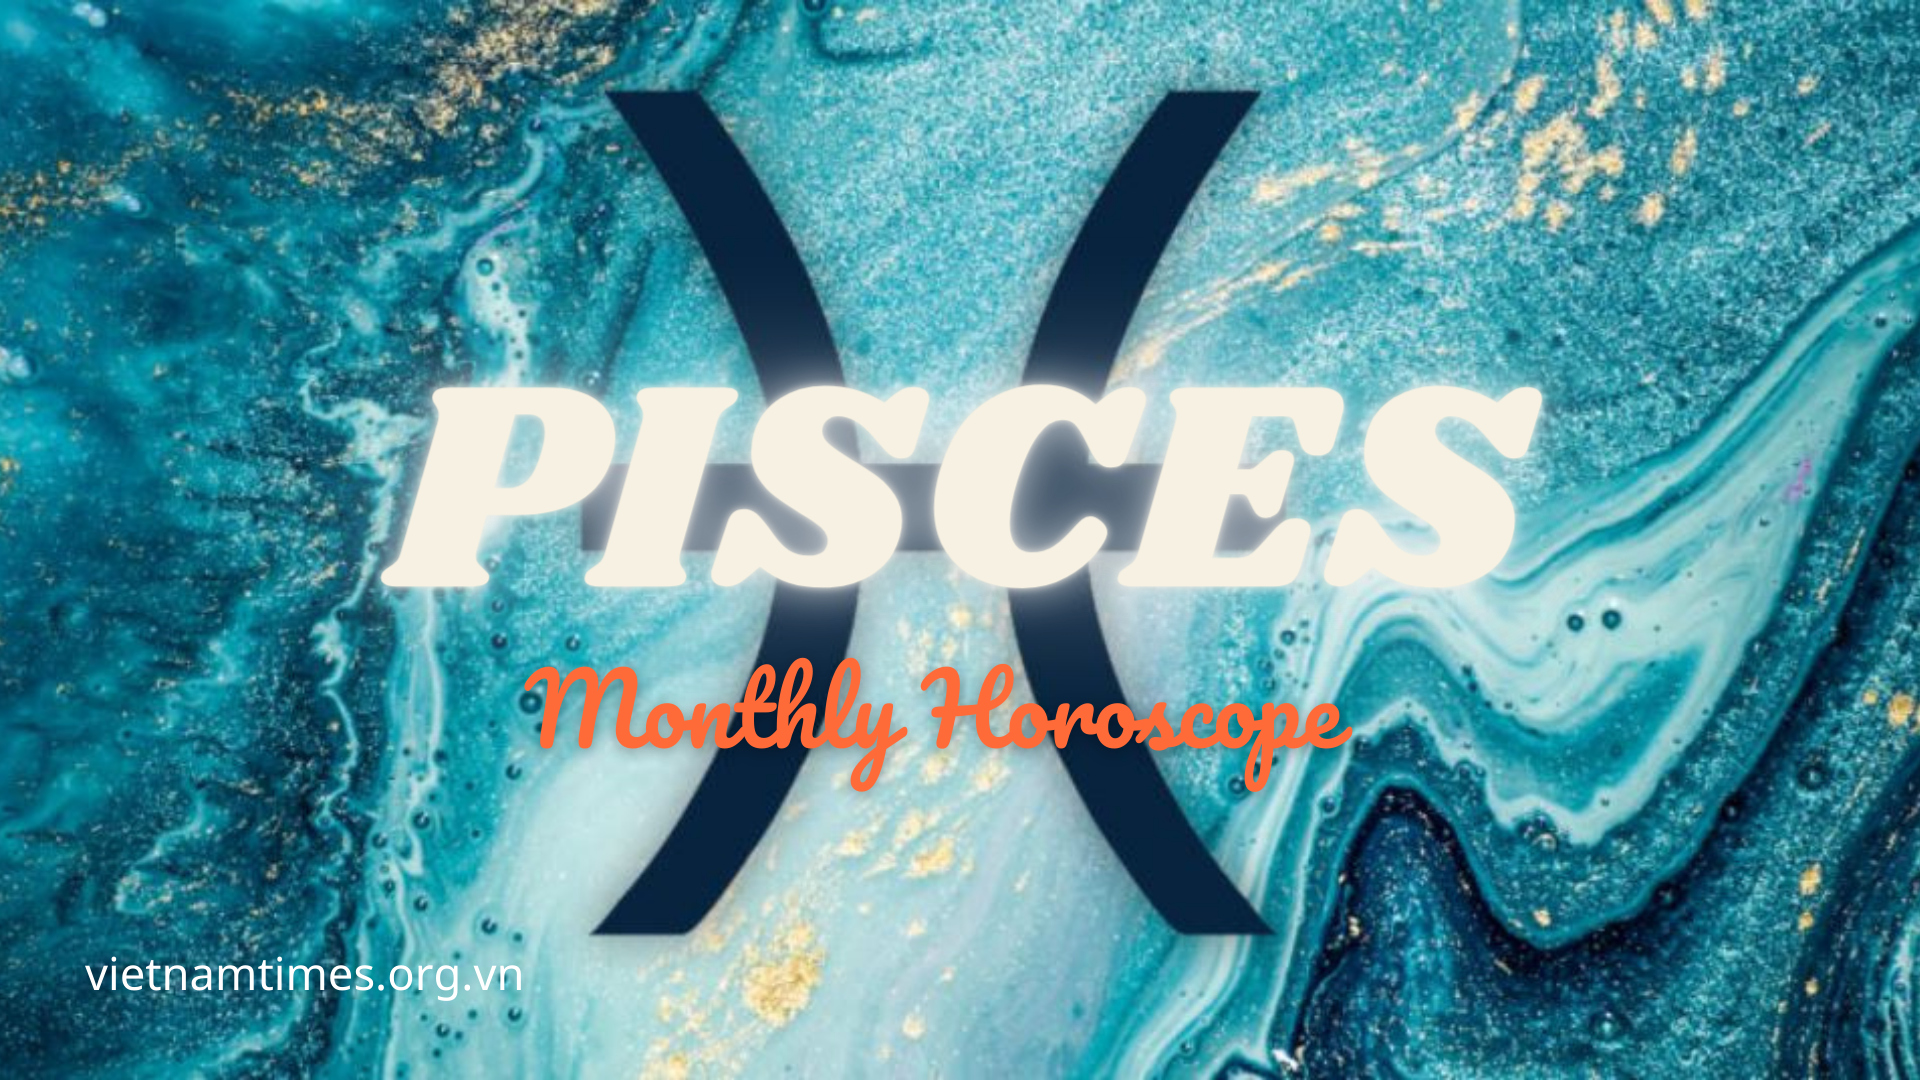 Pisces Horoscope October 2021: Monthly Predictions for Love, Financial, Career and Health